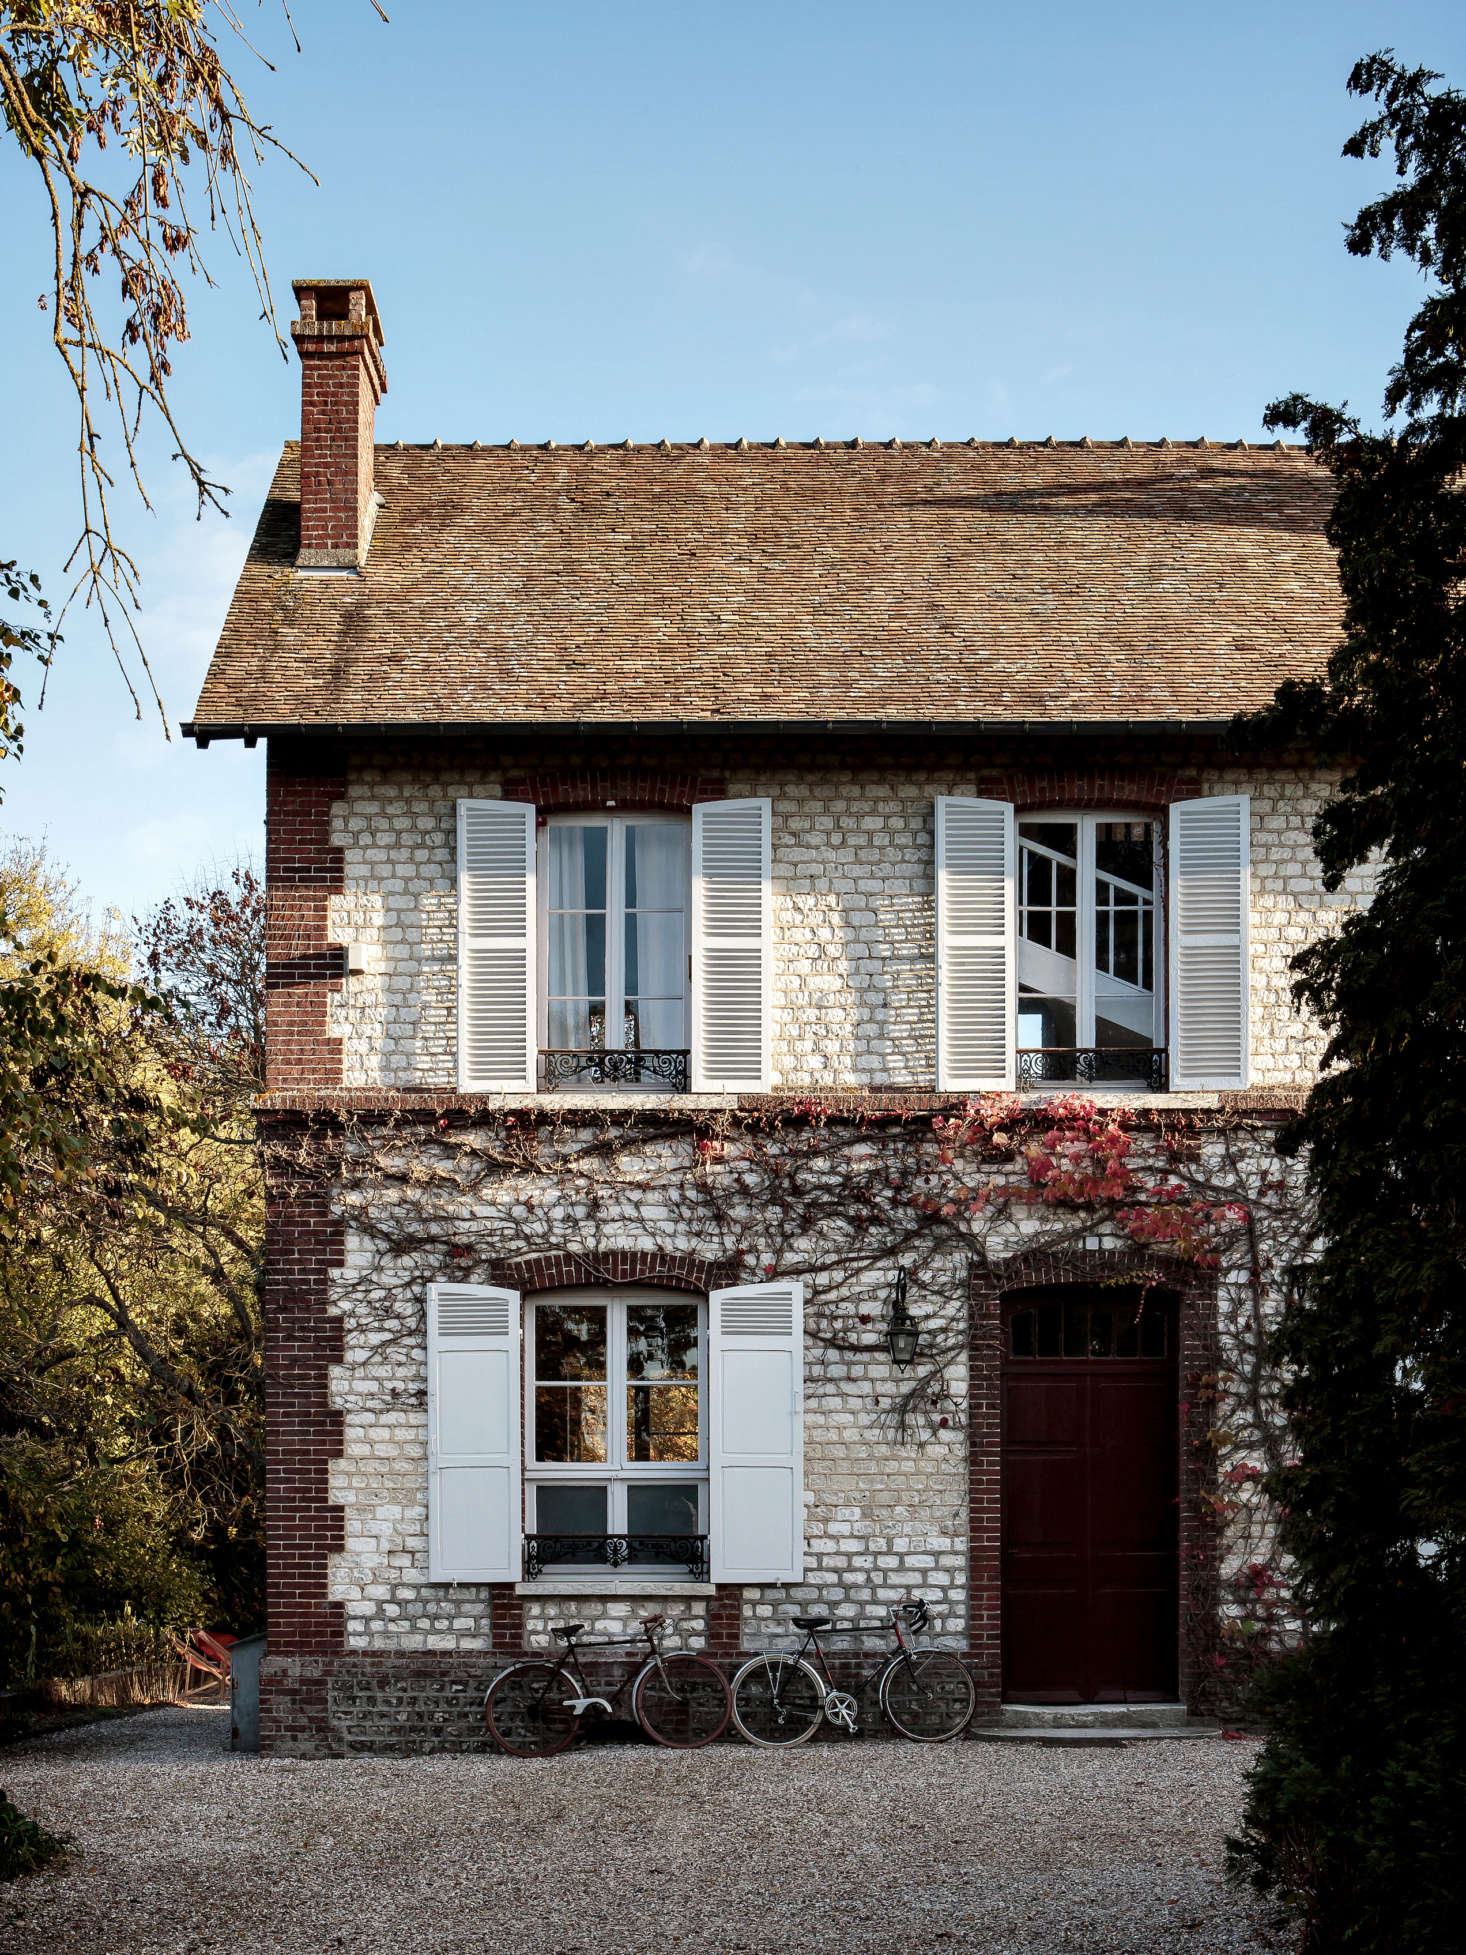 Riverside House: A Normandy Guesthouse from an Upstart American Restaurateur